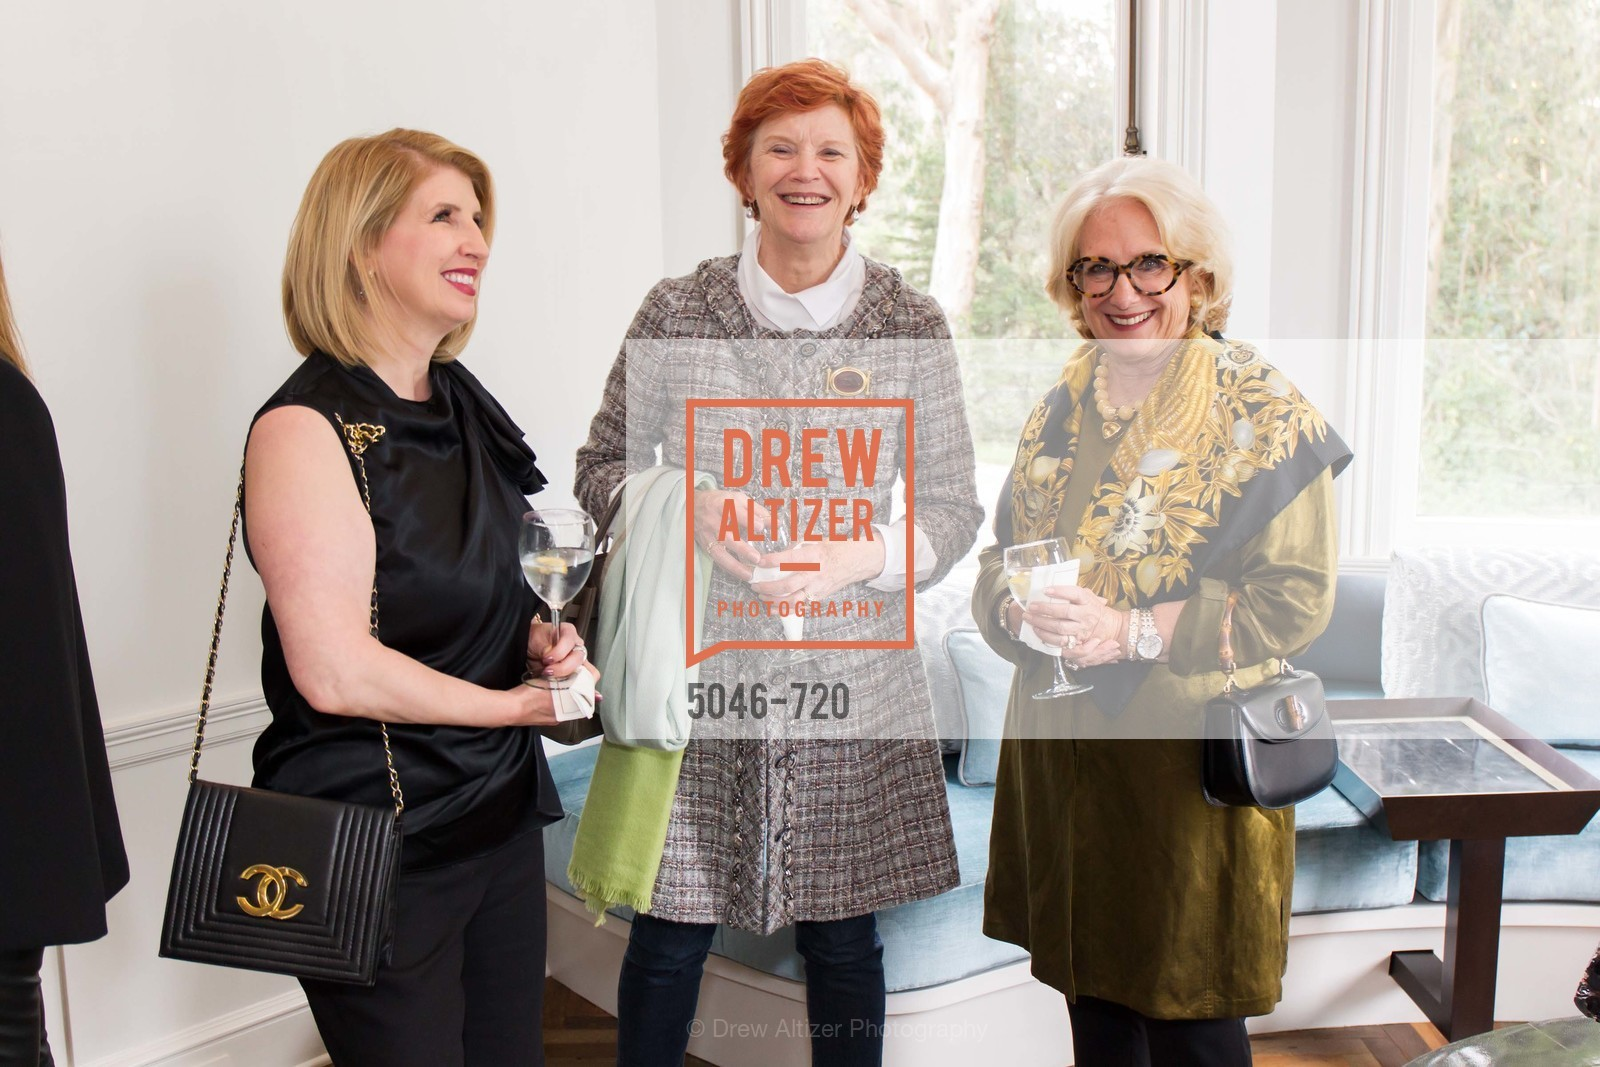 Roberta Economidis, Pamela Babey, Cynthia Molstad, C MAGAZINE Editors Cocktail Party, US, May 13th, 2015,Drew Altizer, Drew Altizer Photography, full-service agency, private events, San Francisco photographer, photographer california